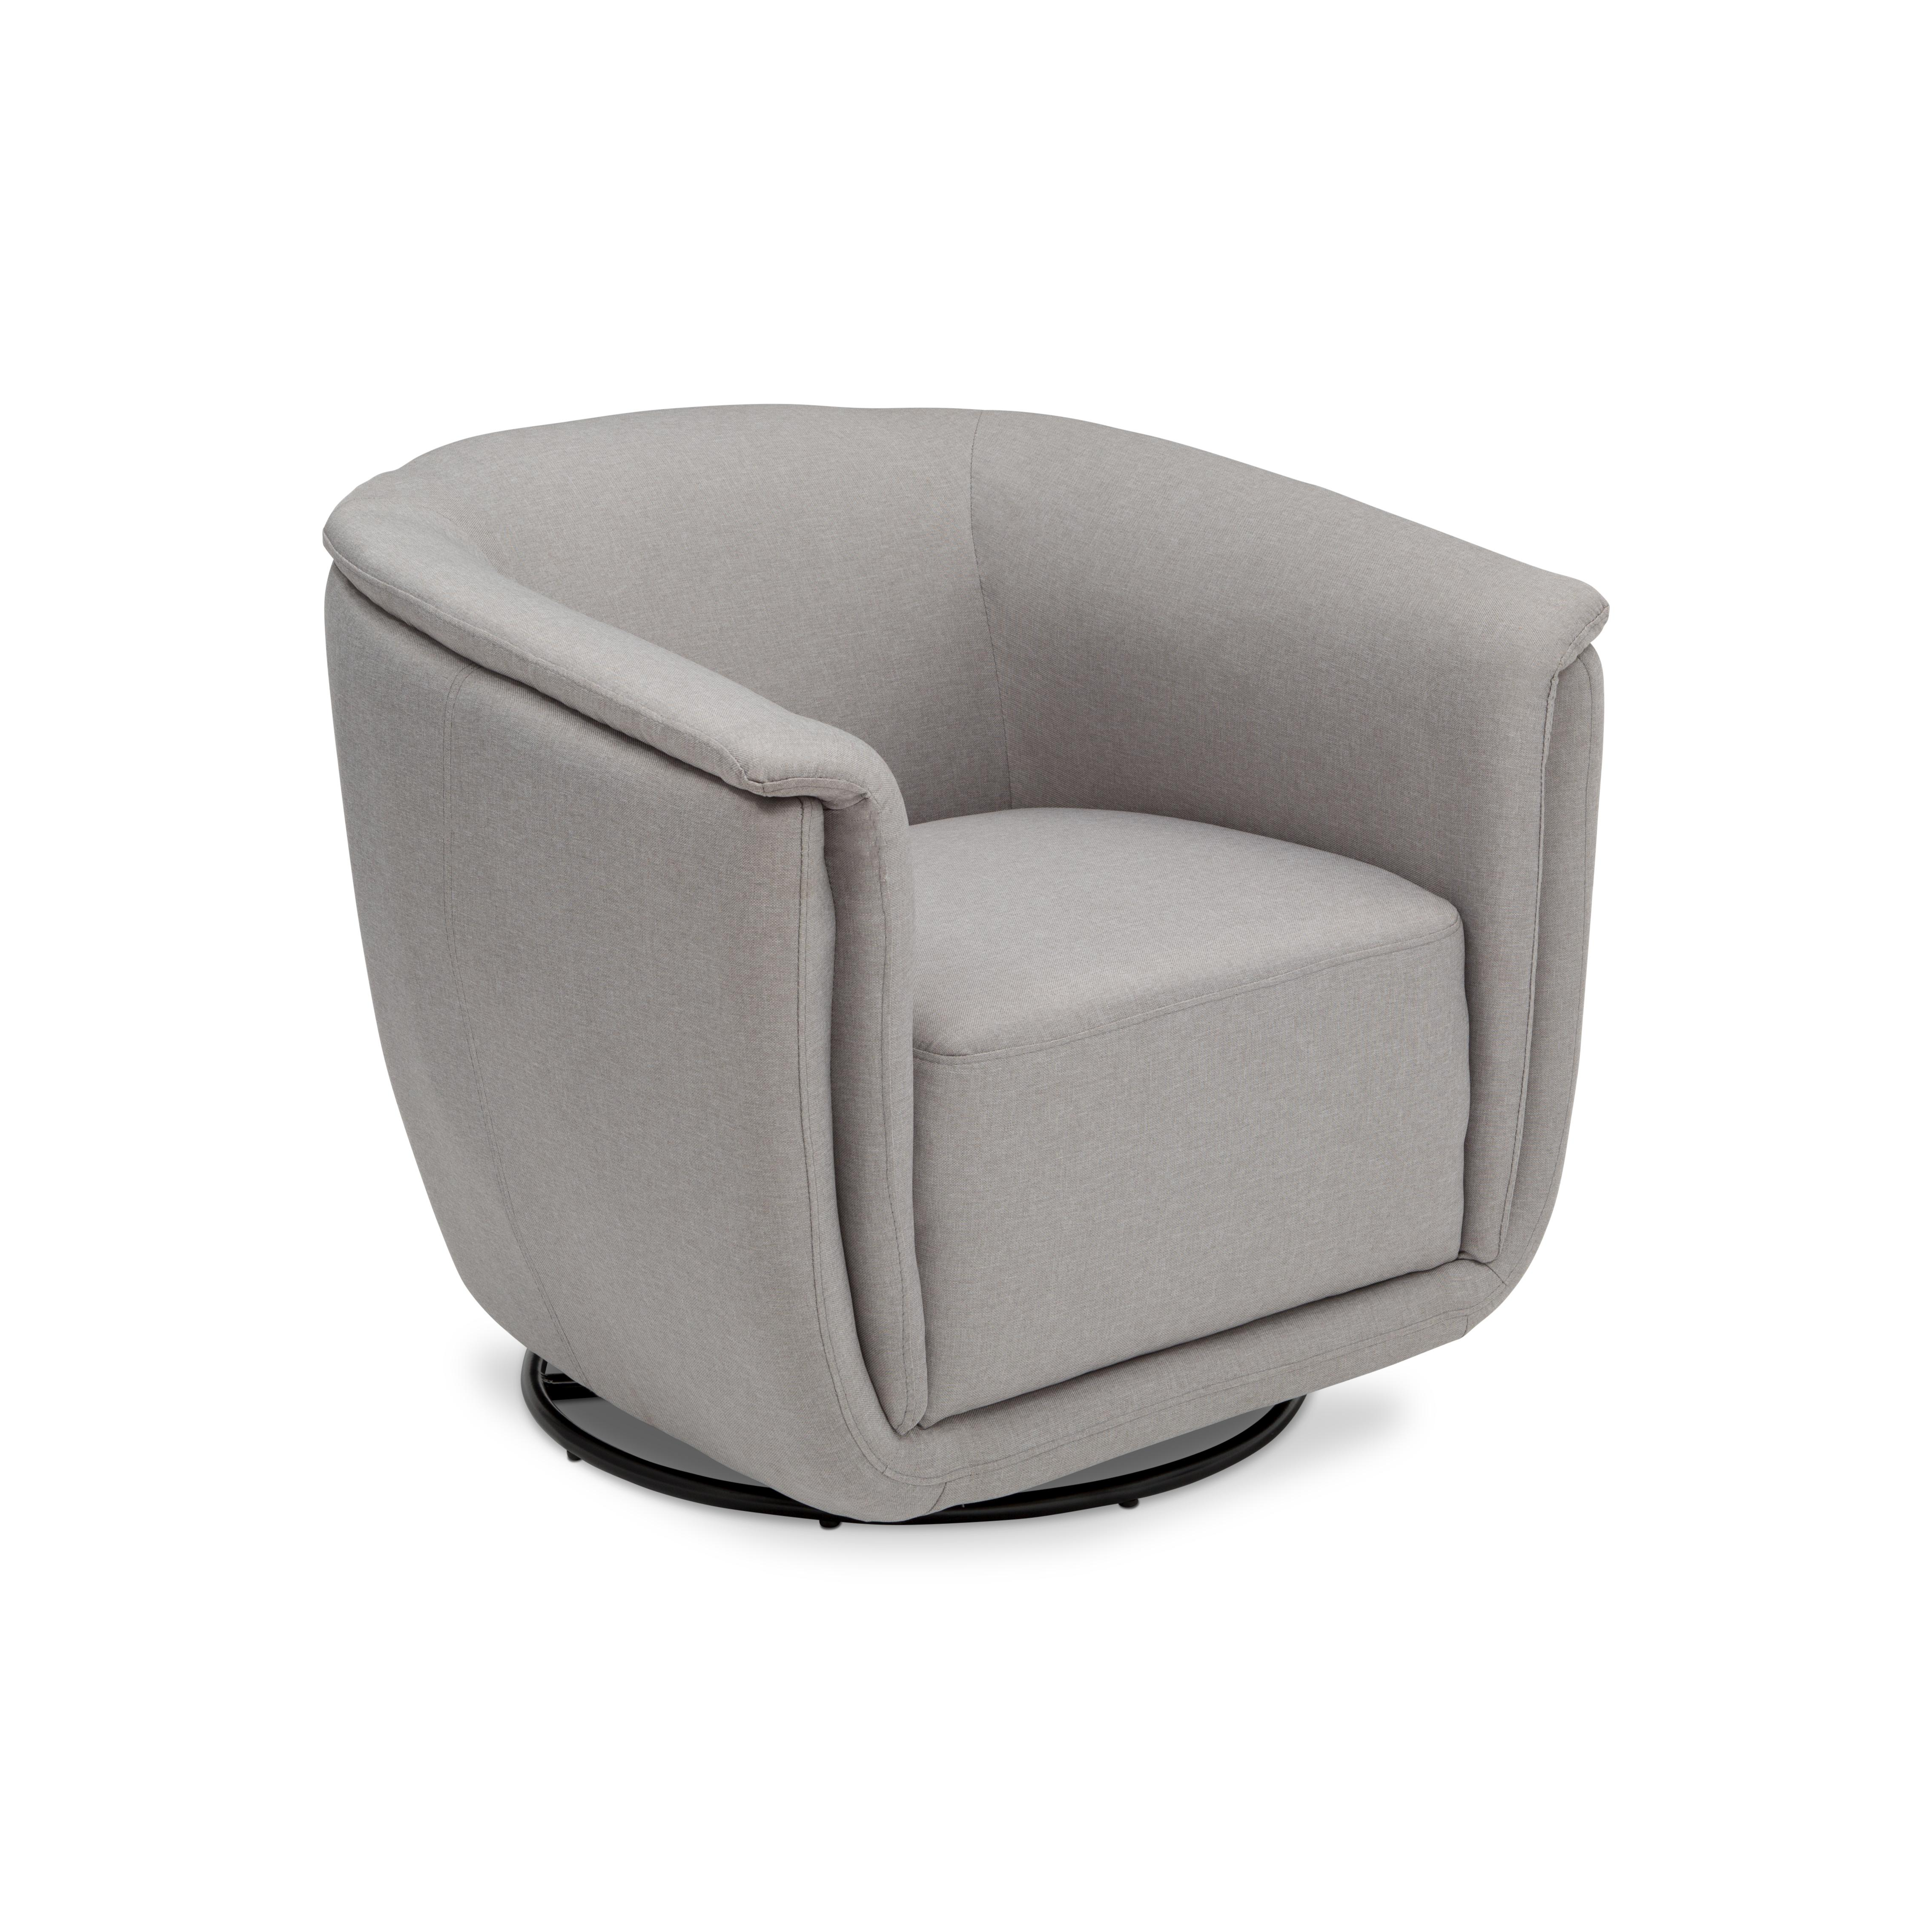 number chairs barrel best skirted chair products item home glide glider swivel nikole furnishings